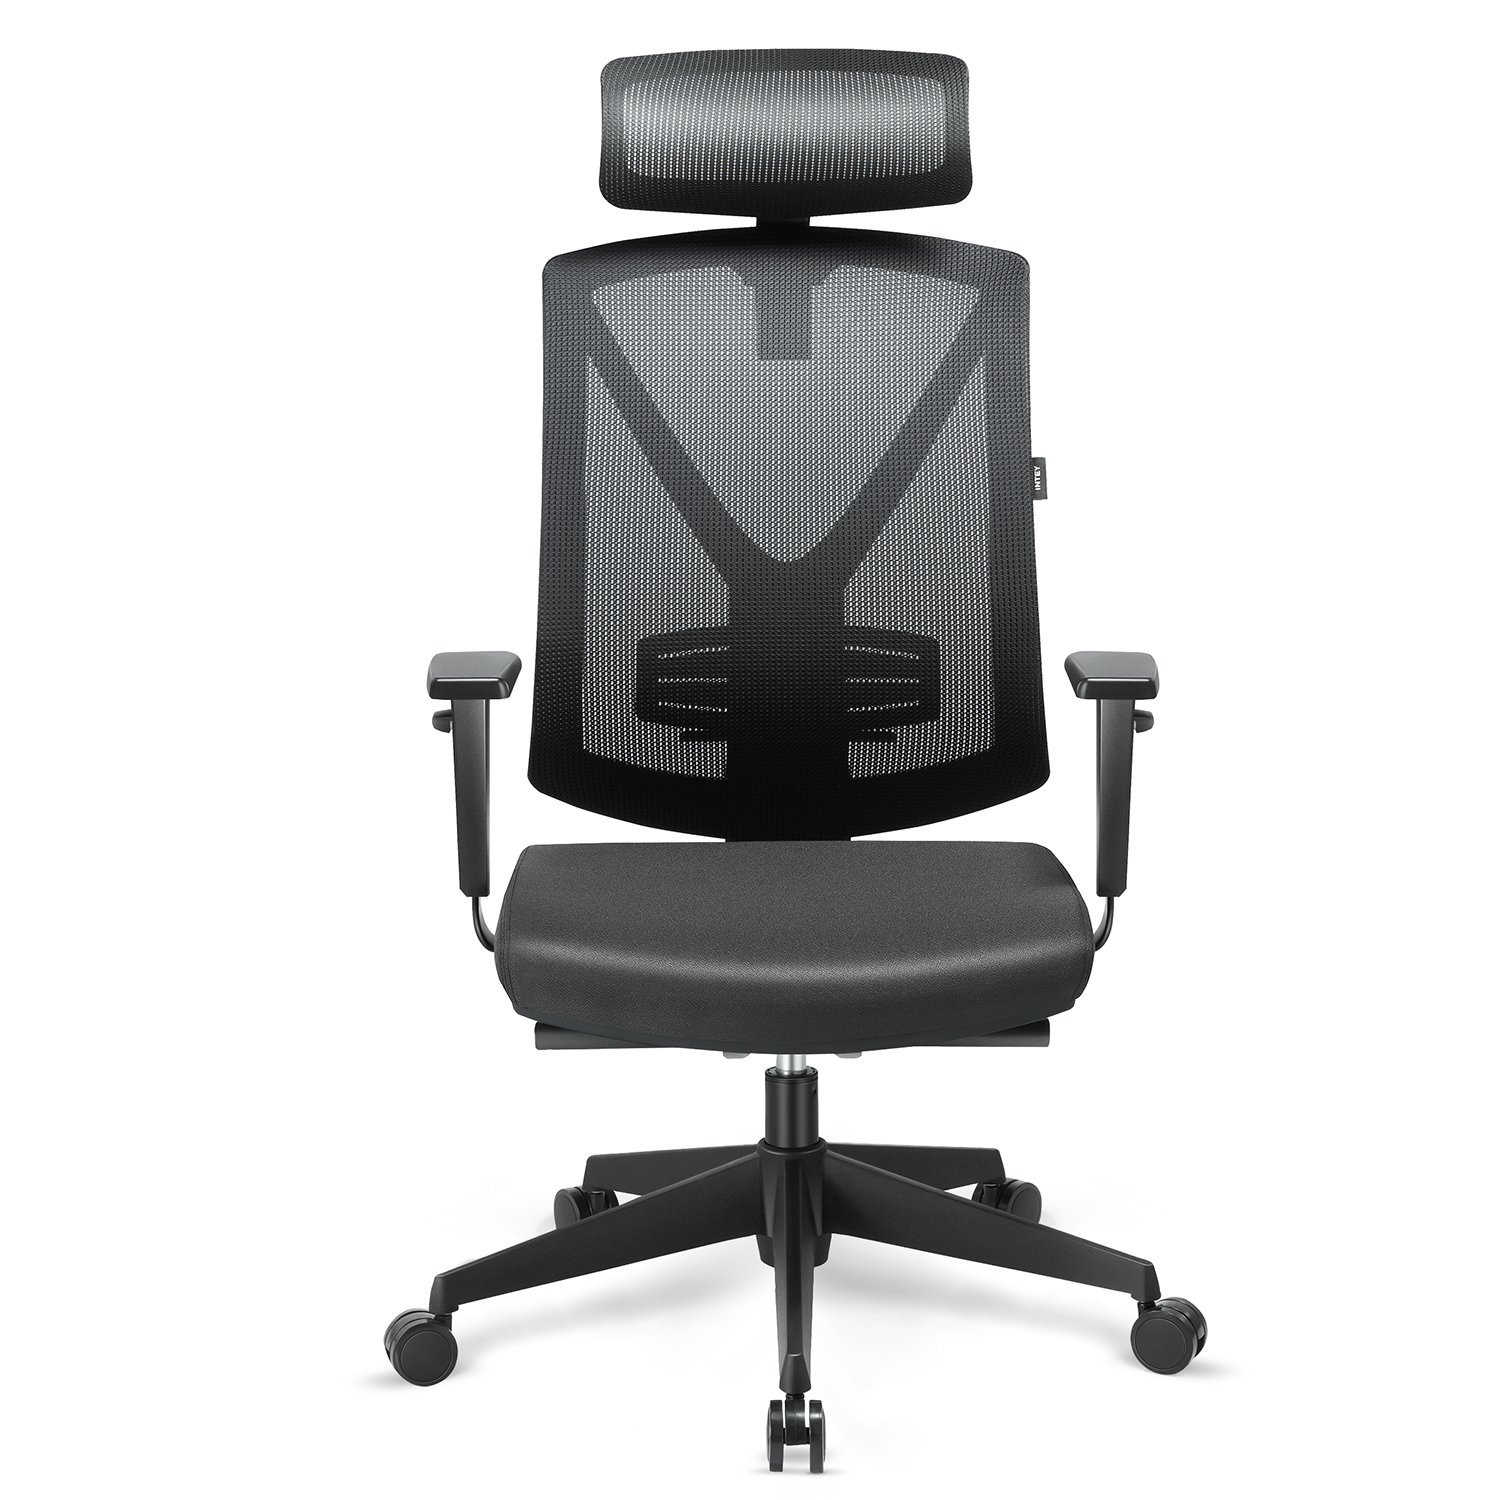 desk chair posture support blogs workanyware co uk u2022 rh blogs workanyware co uk